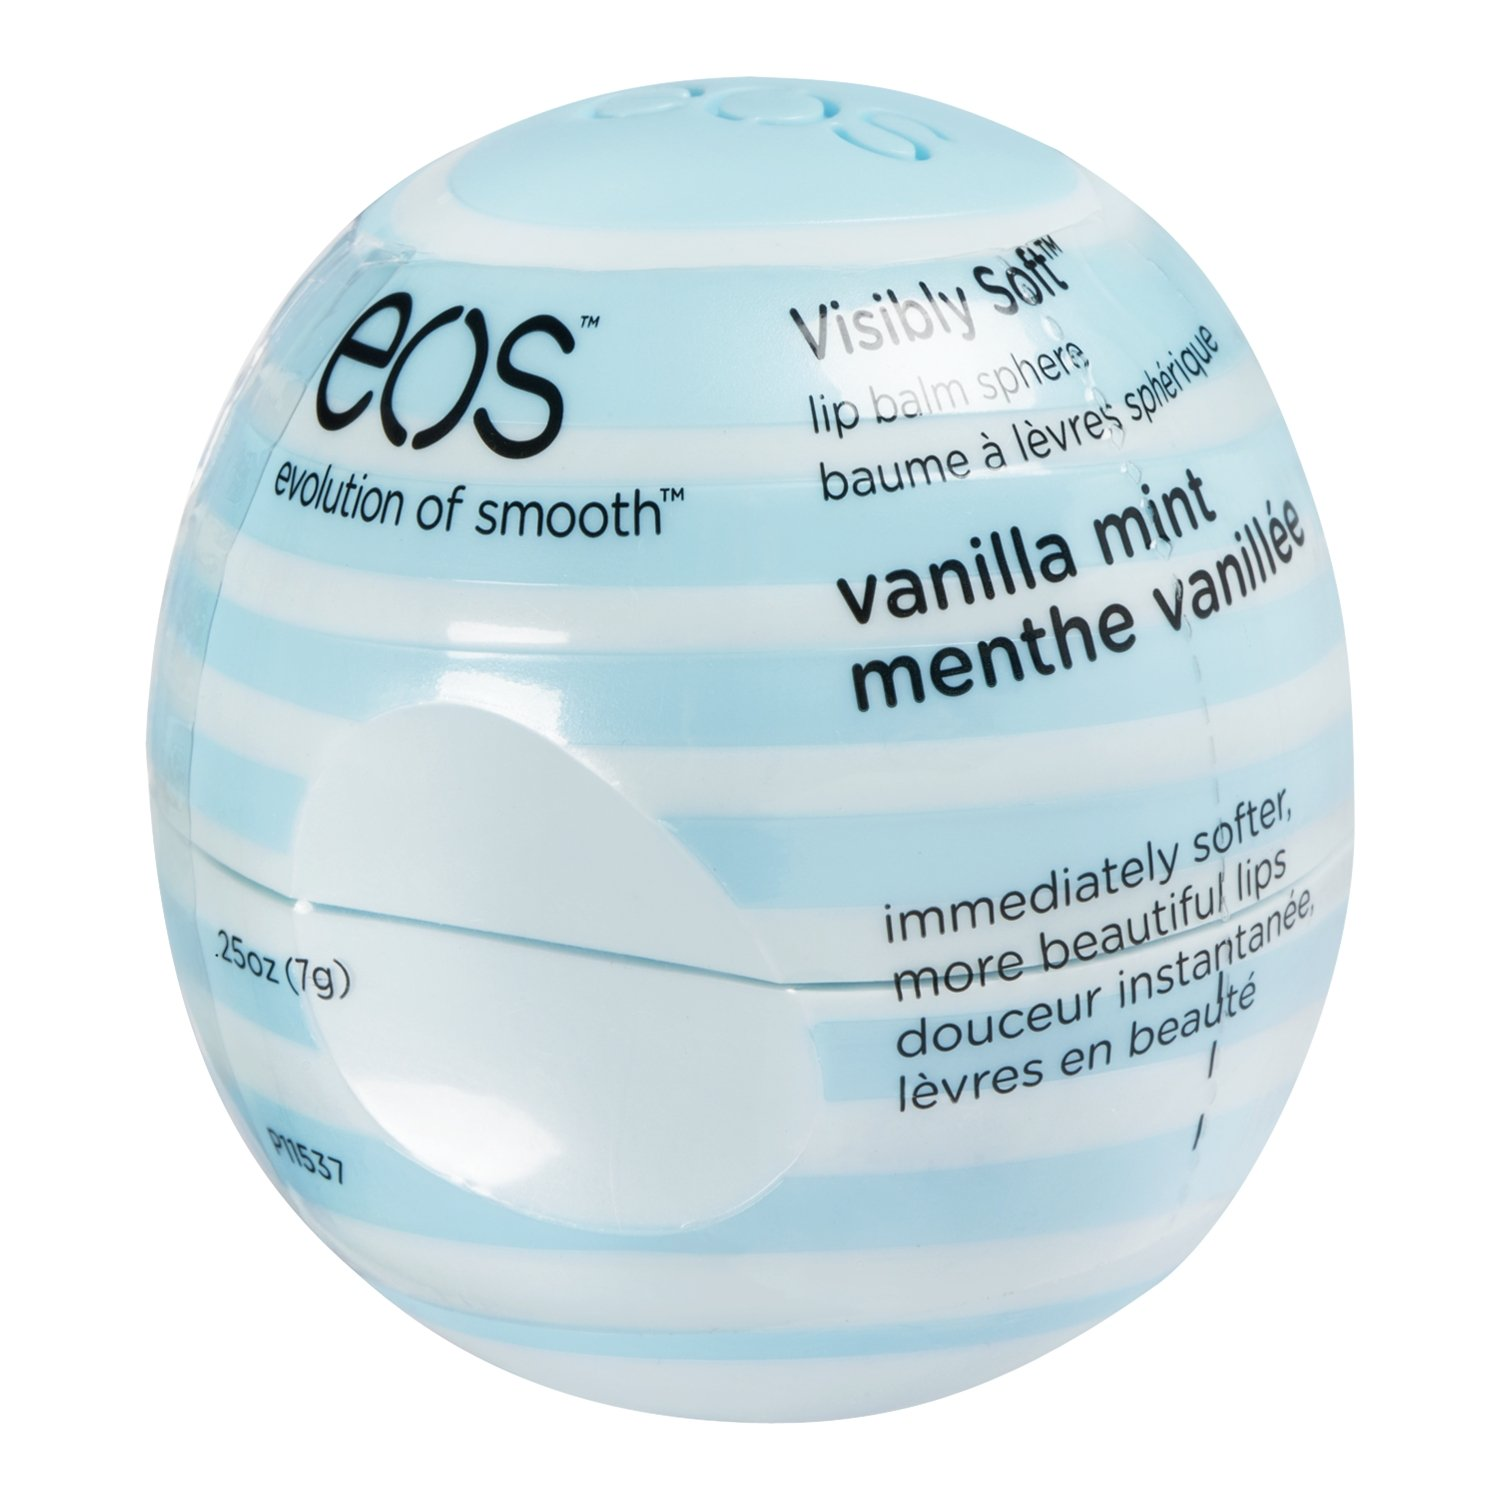 eos Vanilla Mint Visibly Soft Lip Balm, Shrink Wrapped, 7g, Pack of 1 ANB Canada 147701